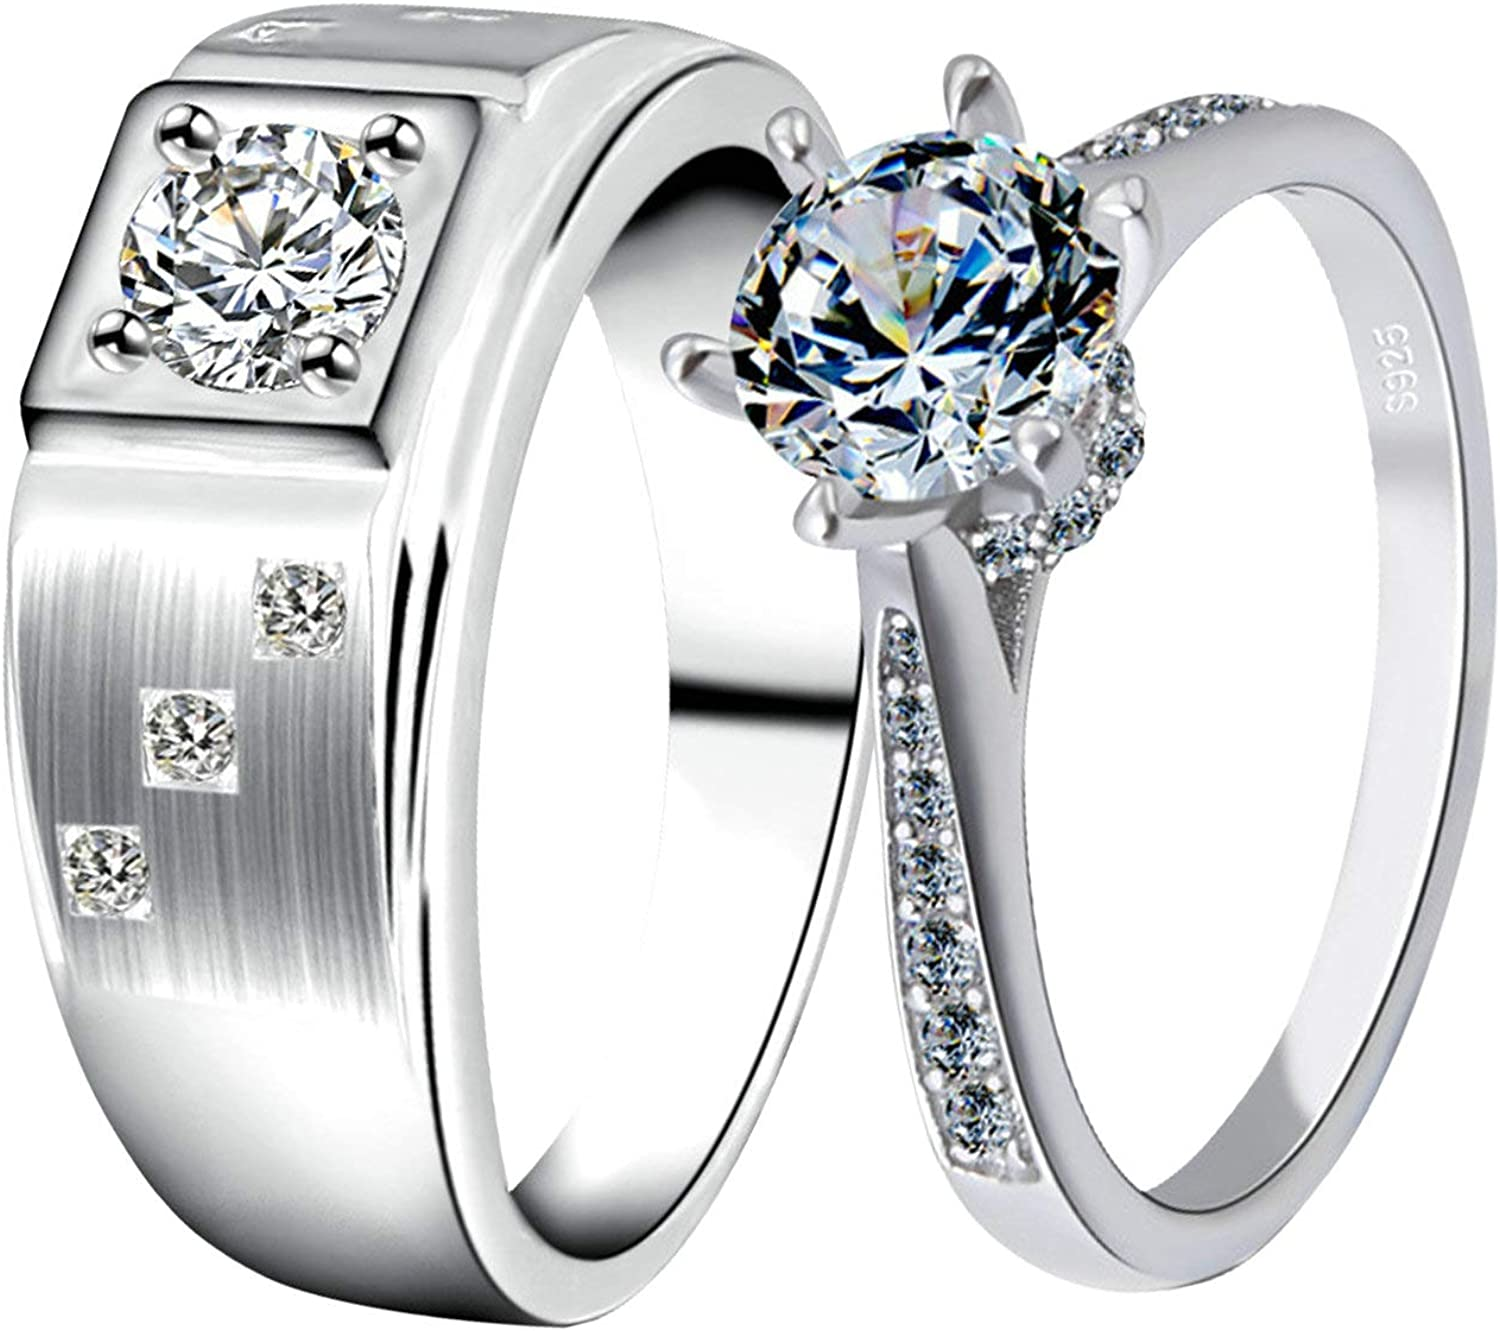 KnBoB His Hers Matching Wedding Max 55% OFF Silver Ro Zirconia Cubic cheap Rings